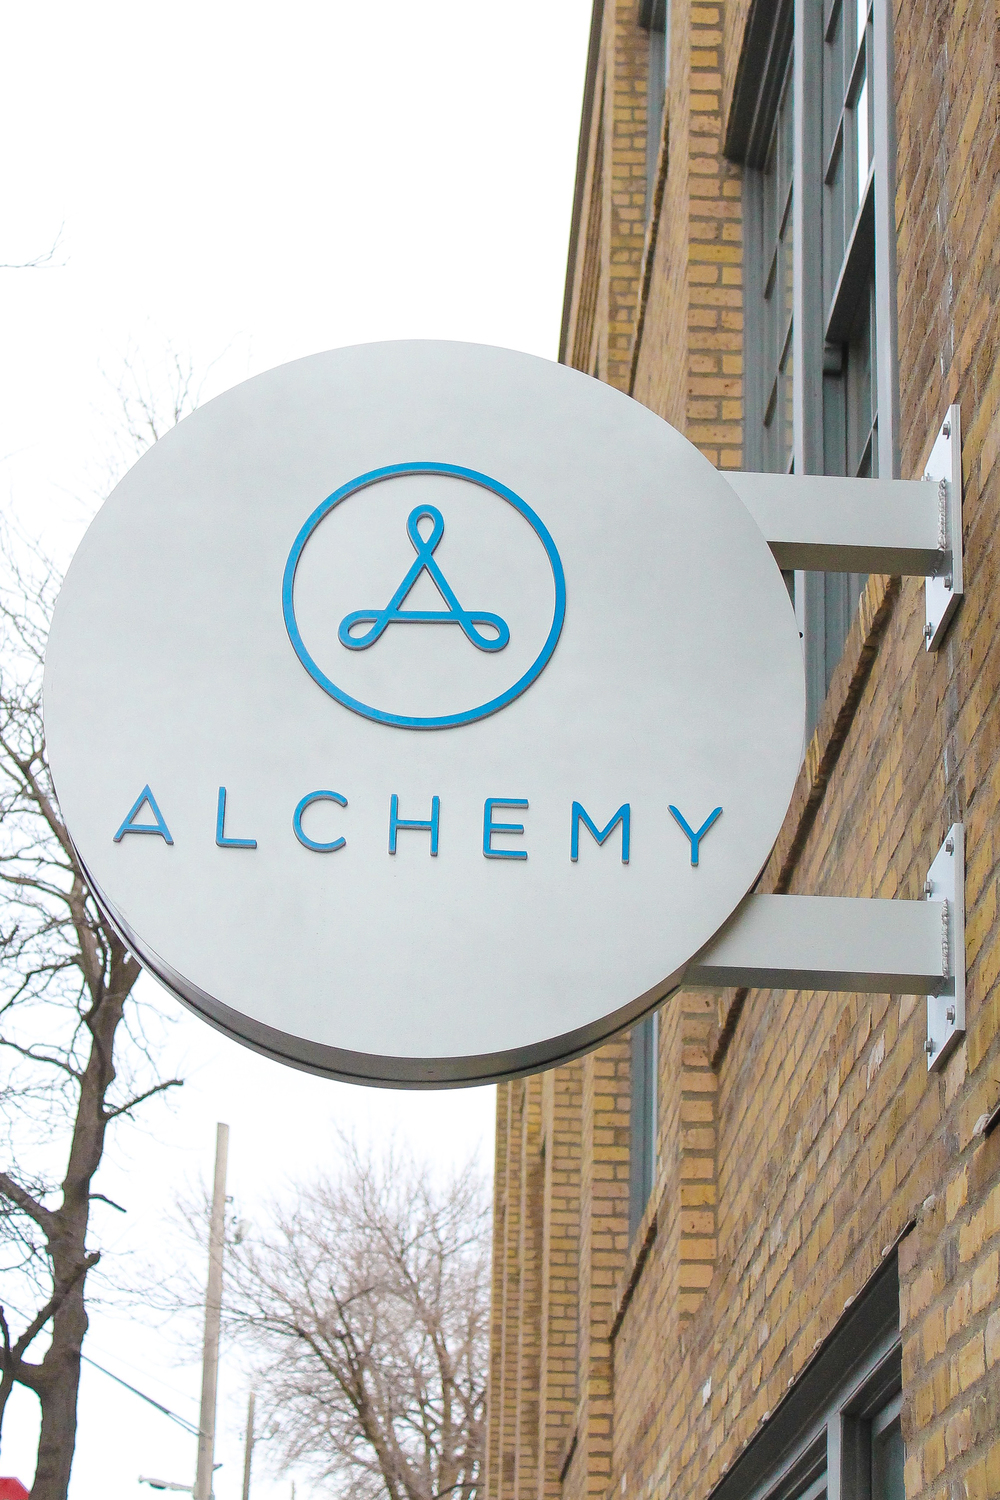 Alchemy, Minneapolis, Fitness Studio, HIIT, High Intensity, Yoga, Strength Training, Workout